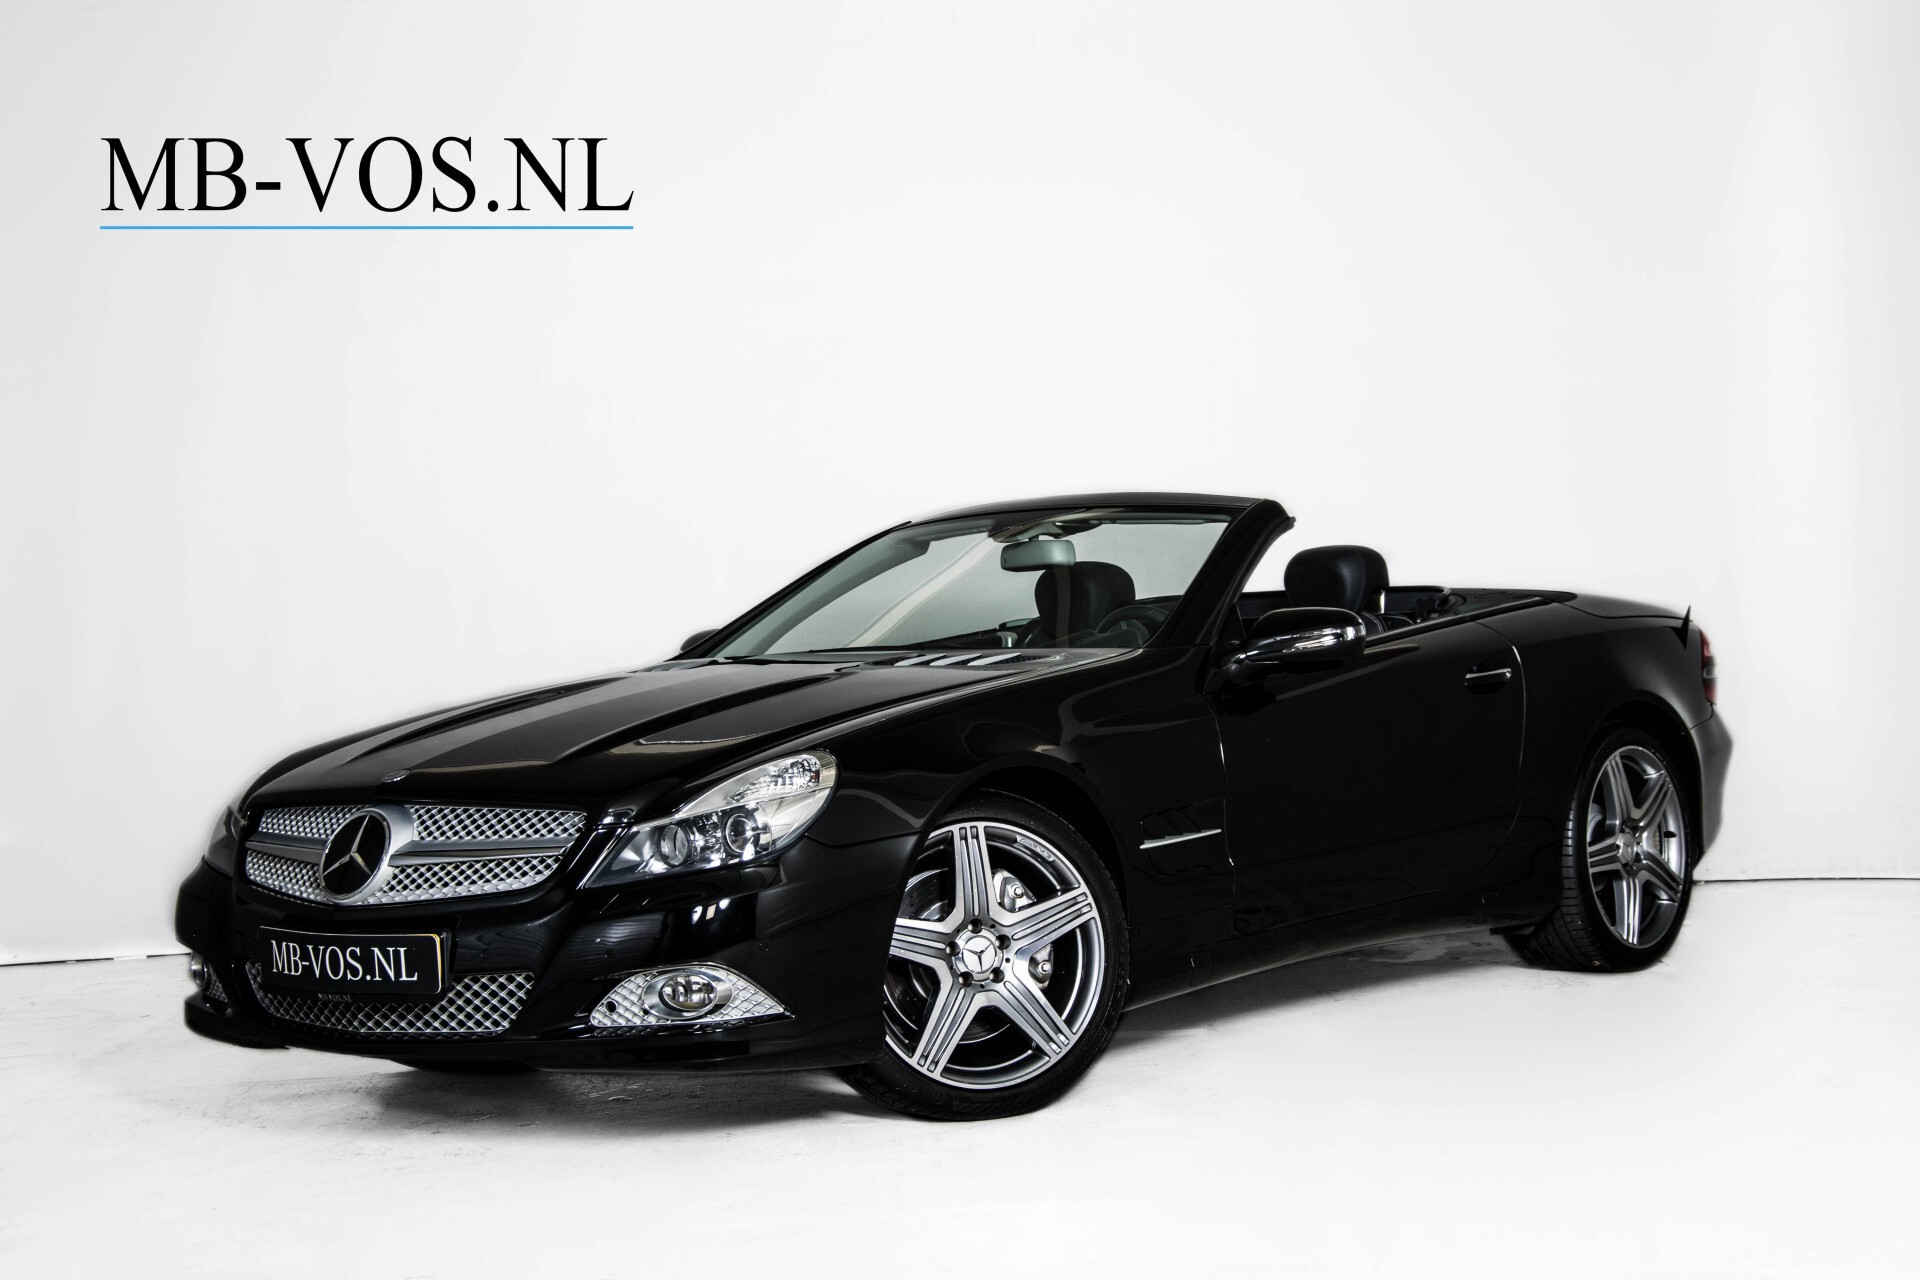 Mercedes-Benz SL-Klasse 500 Sport ABC/Harman-Kardon/Comand/Distronic Aut7 NP €175292 Foto 1